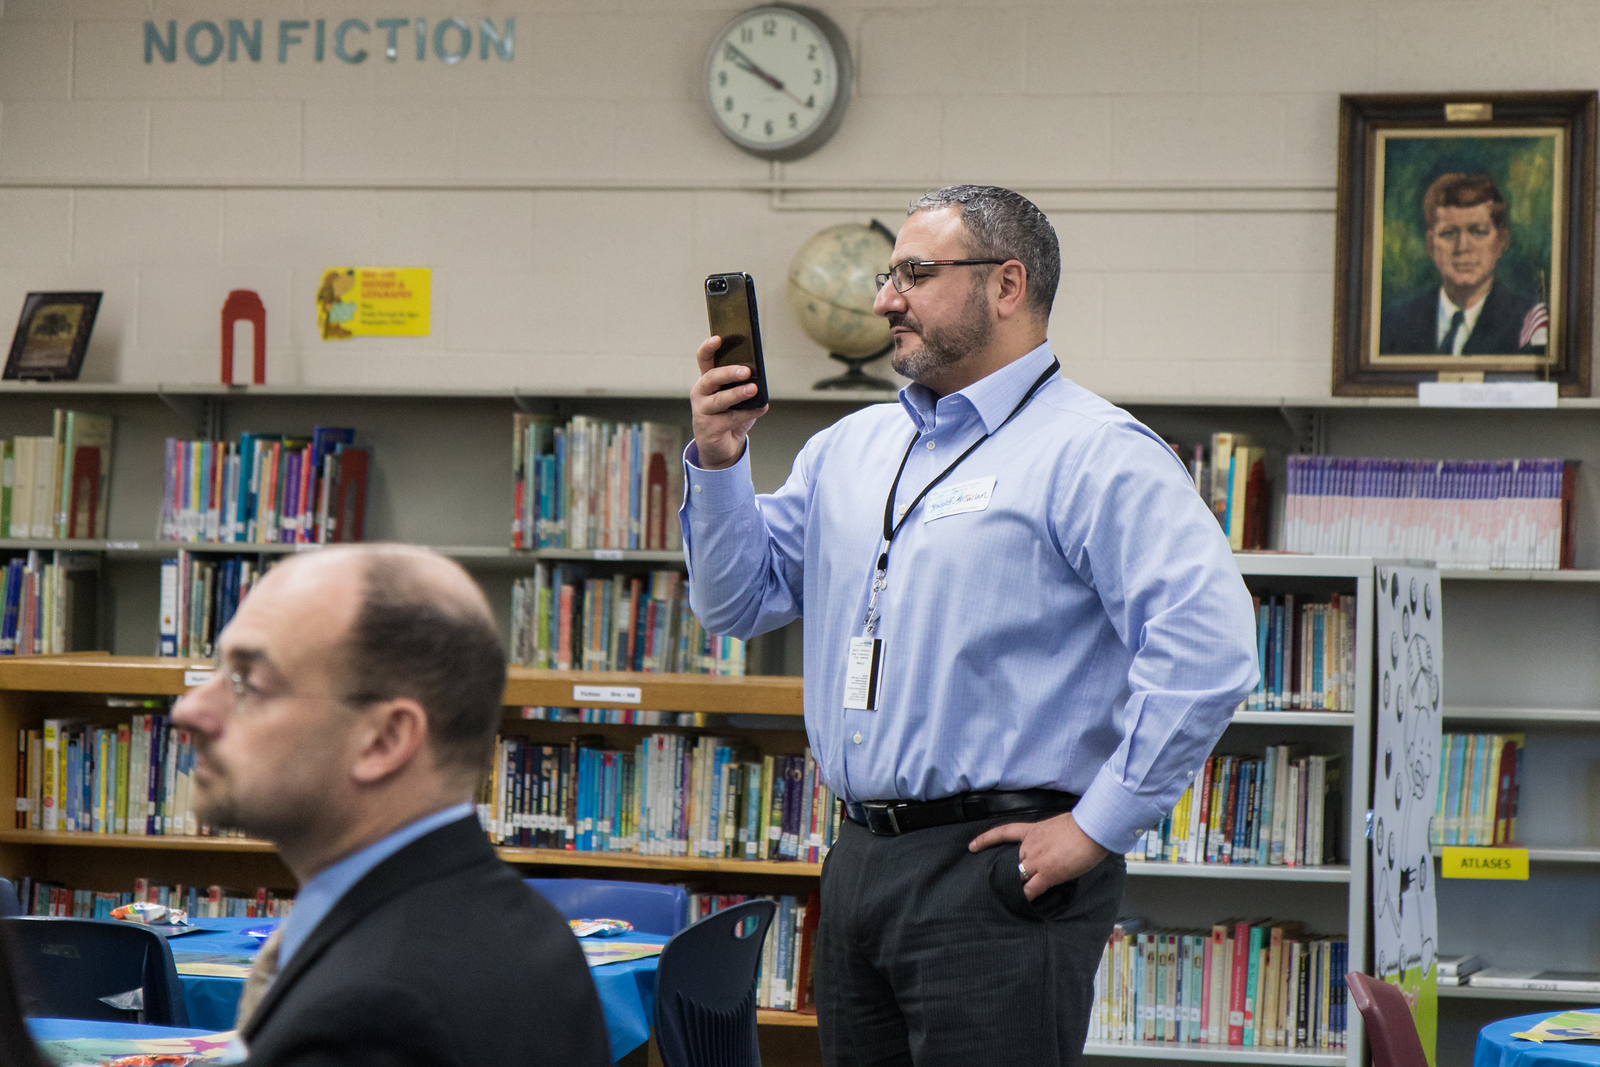 Youssef Mosallam, Executive Director of Student Achievement for Dearborn Schools. Photo by Debbie Malyn.